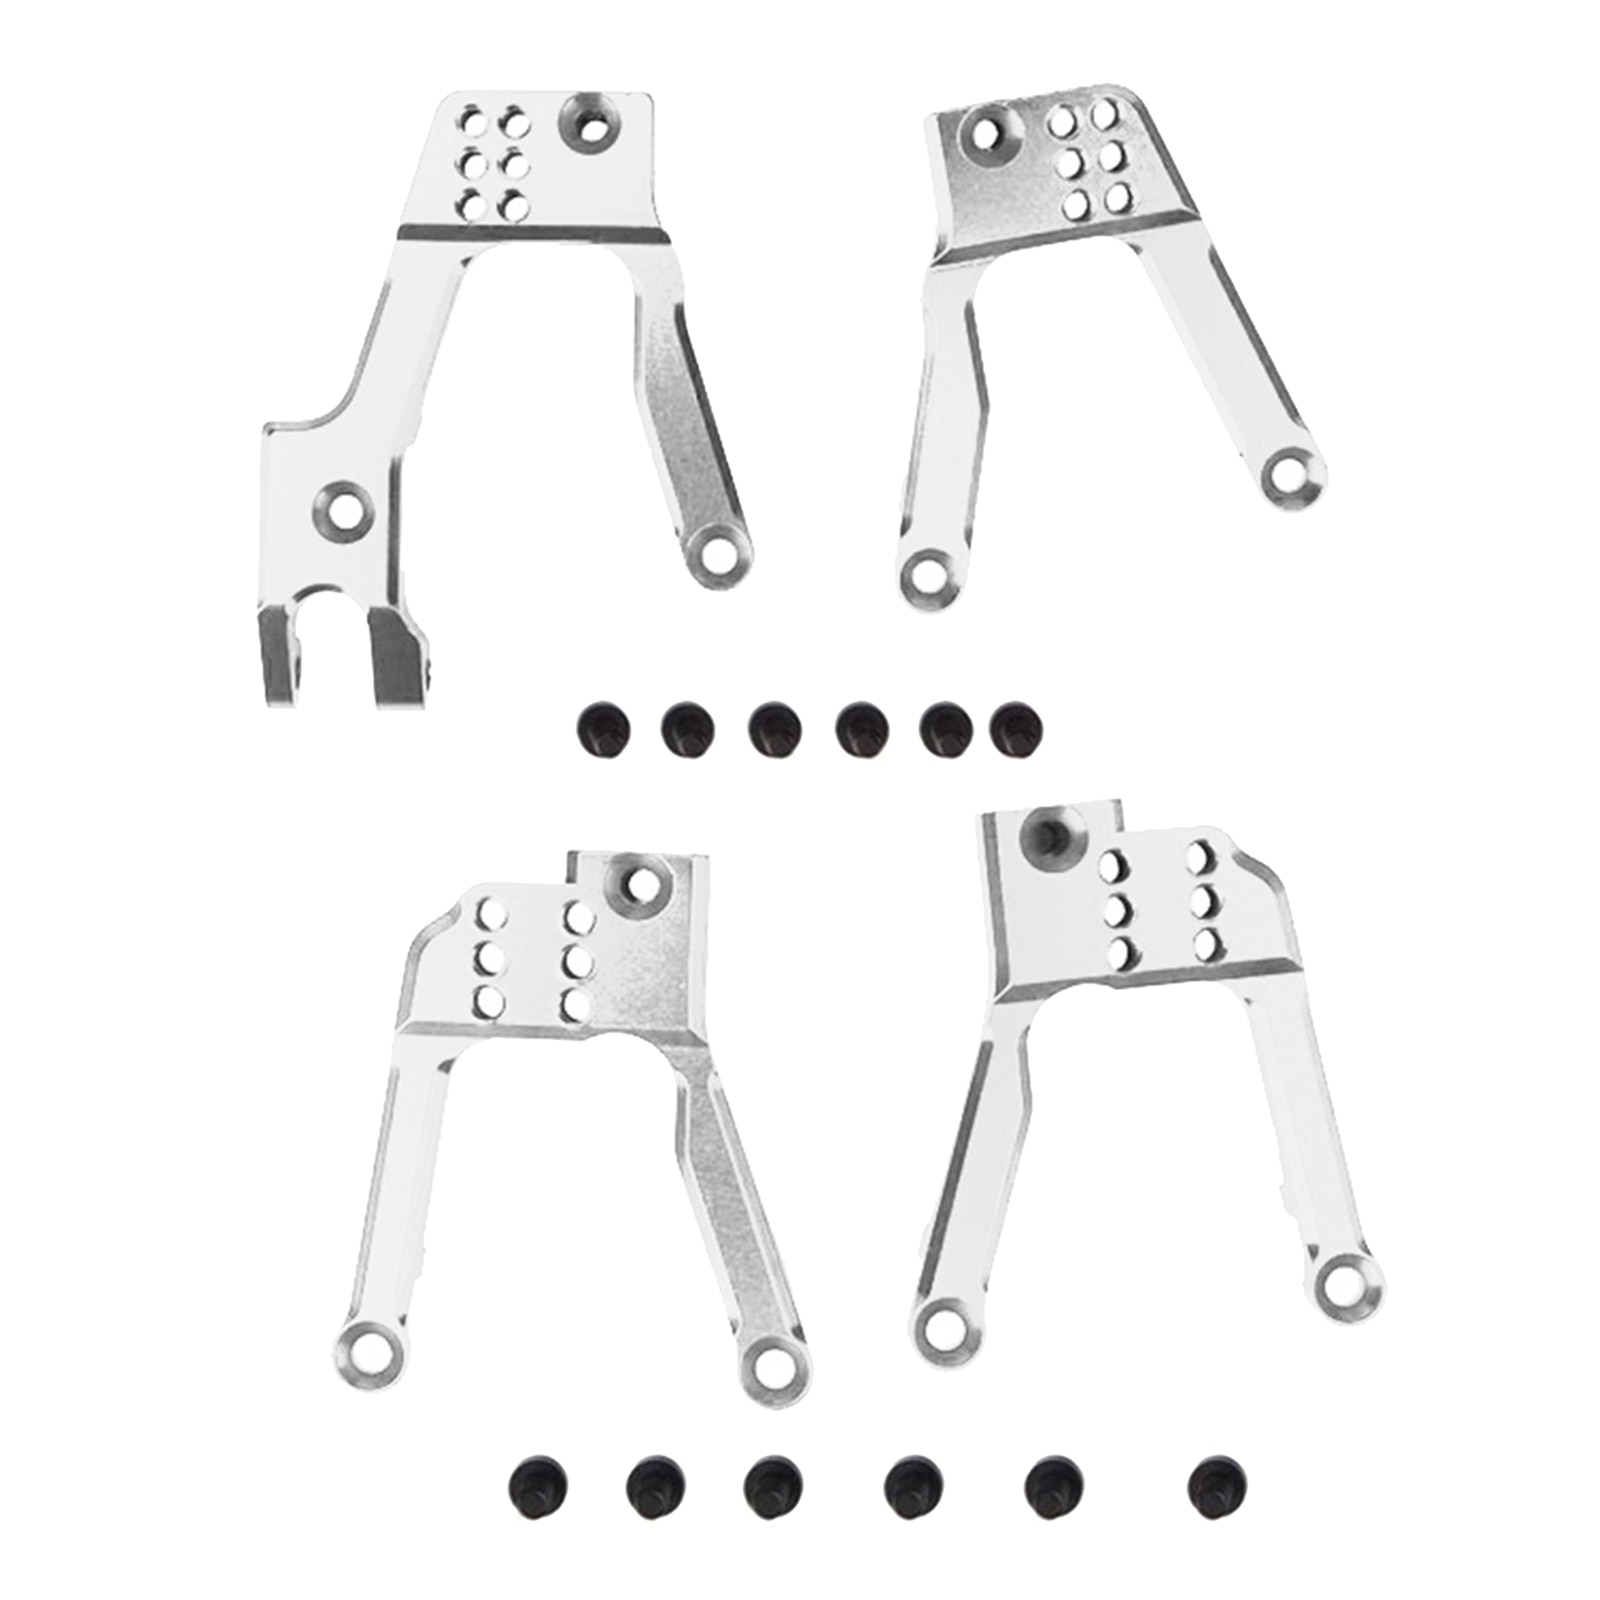 4x RC Aluminum Shock Damper Tower Mount Hoops for SCX10 II 90046 90047 Car Replacement Parts enlarge